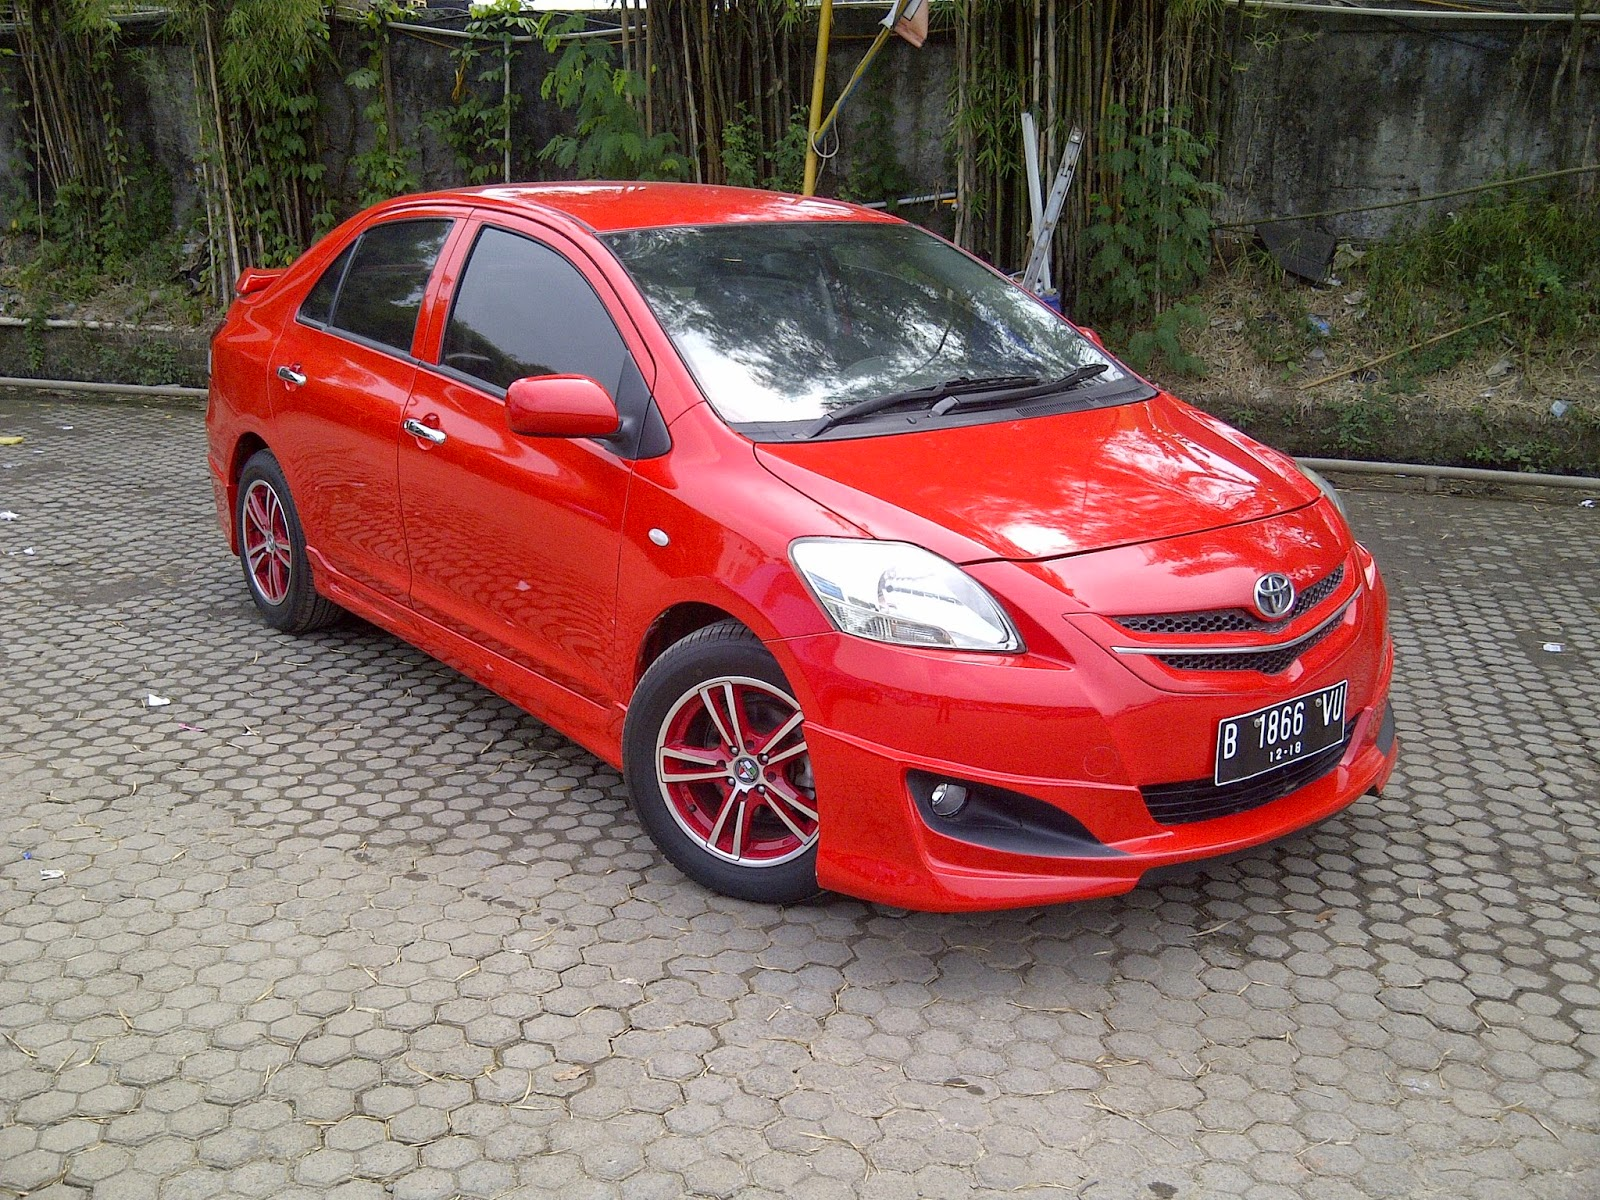 Toyota Yaris Trd Warna Merah Oli All New Kijang Innova Hasil Modifikasi Vios Limo 2007 Up Eksterior